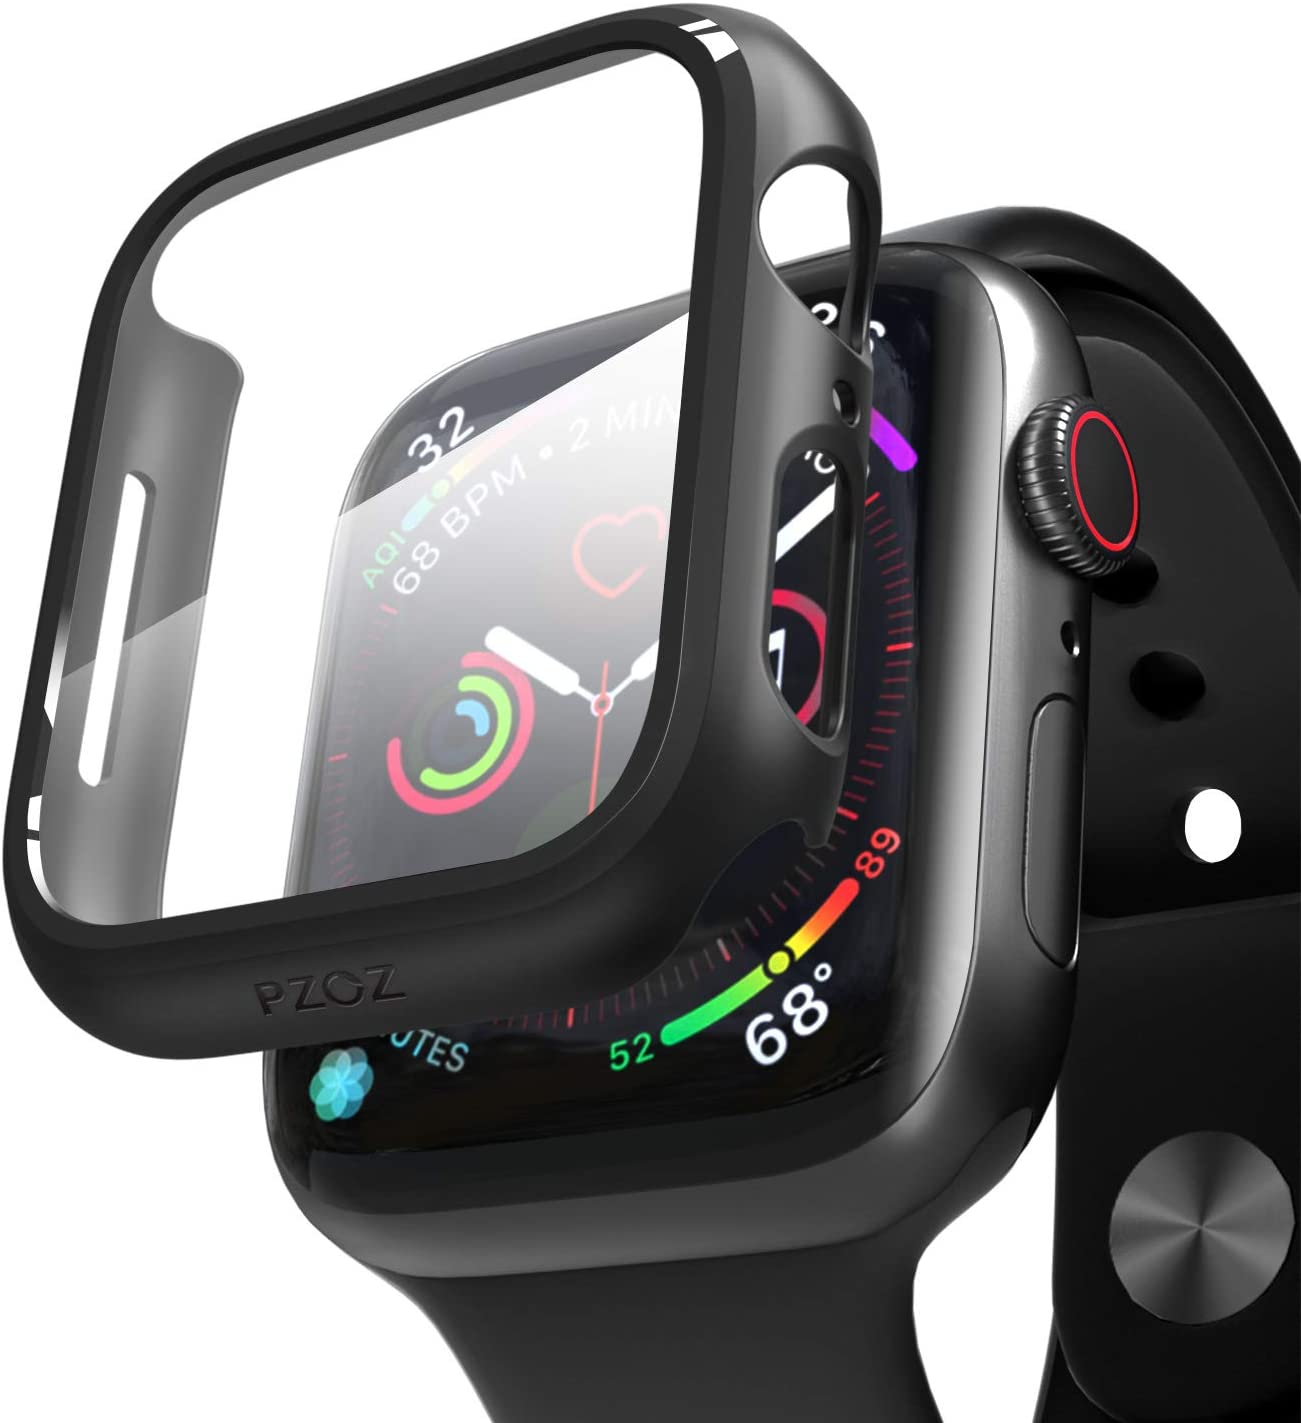 pzoz Compatible Apple Watch Series 6/5 /4 /SE 40mm Case with Screen Protector Accessories Slim Guard Thin Bumper Full Coverage Matte Hard Cover Defense Edge for Women Men New Gen GPS iWatch (Black)